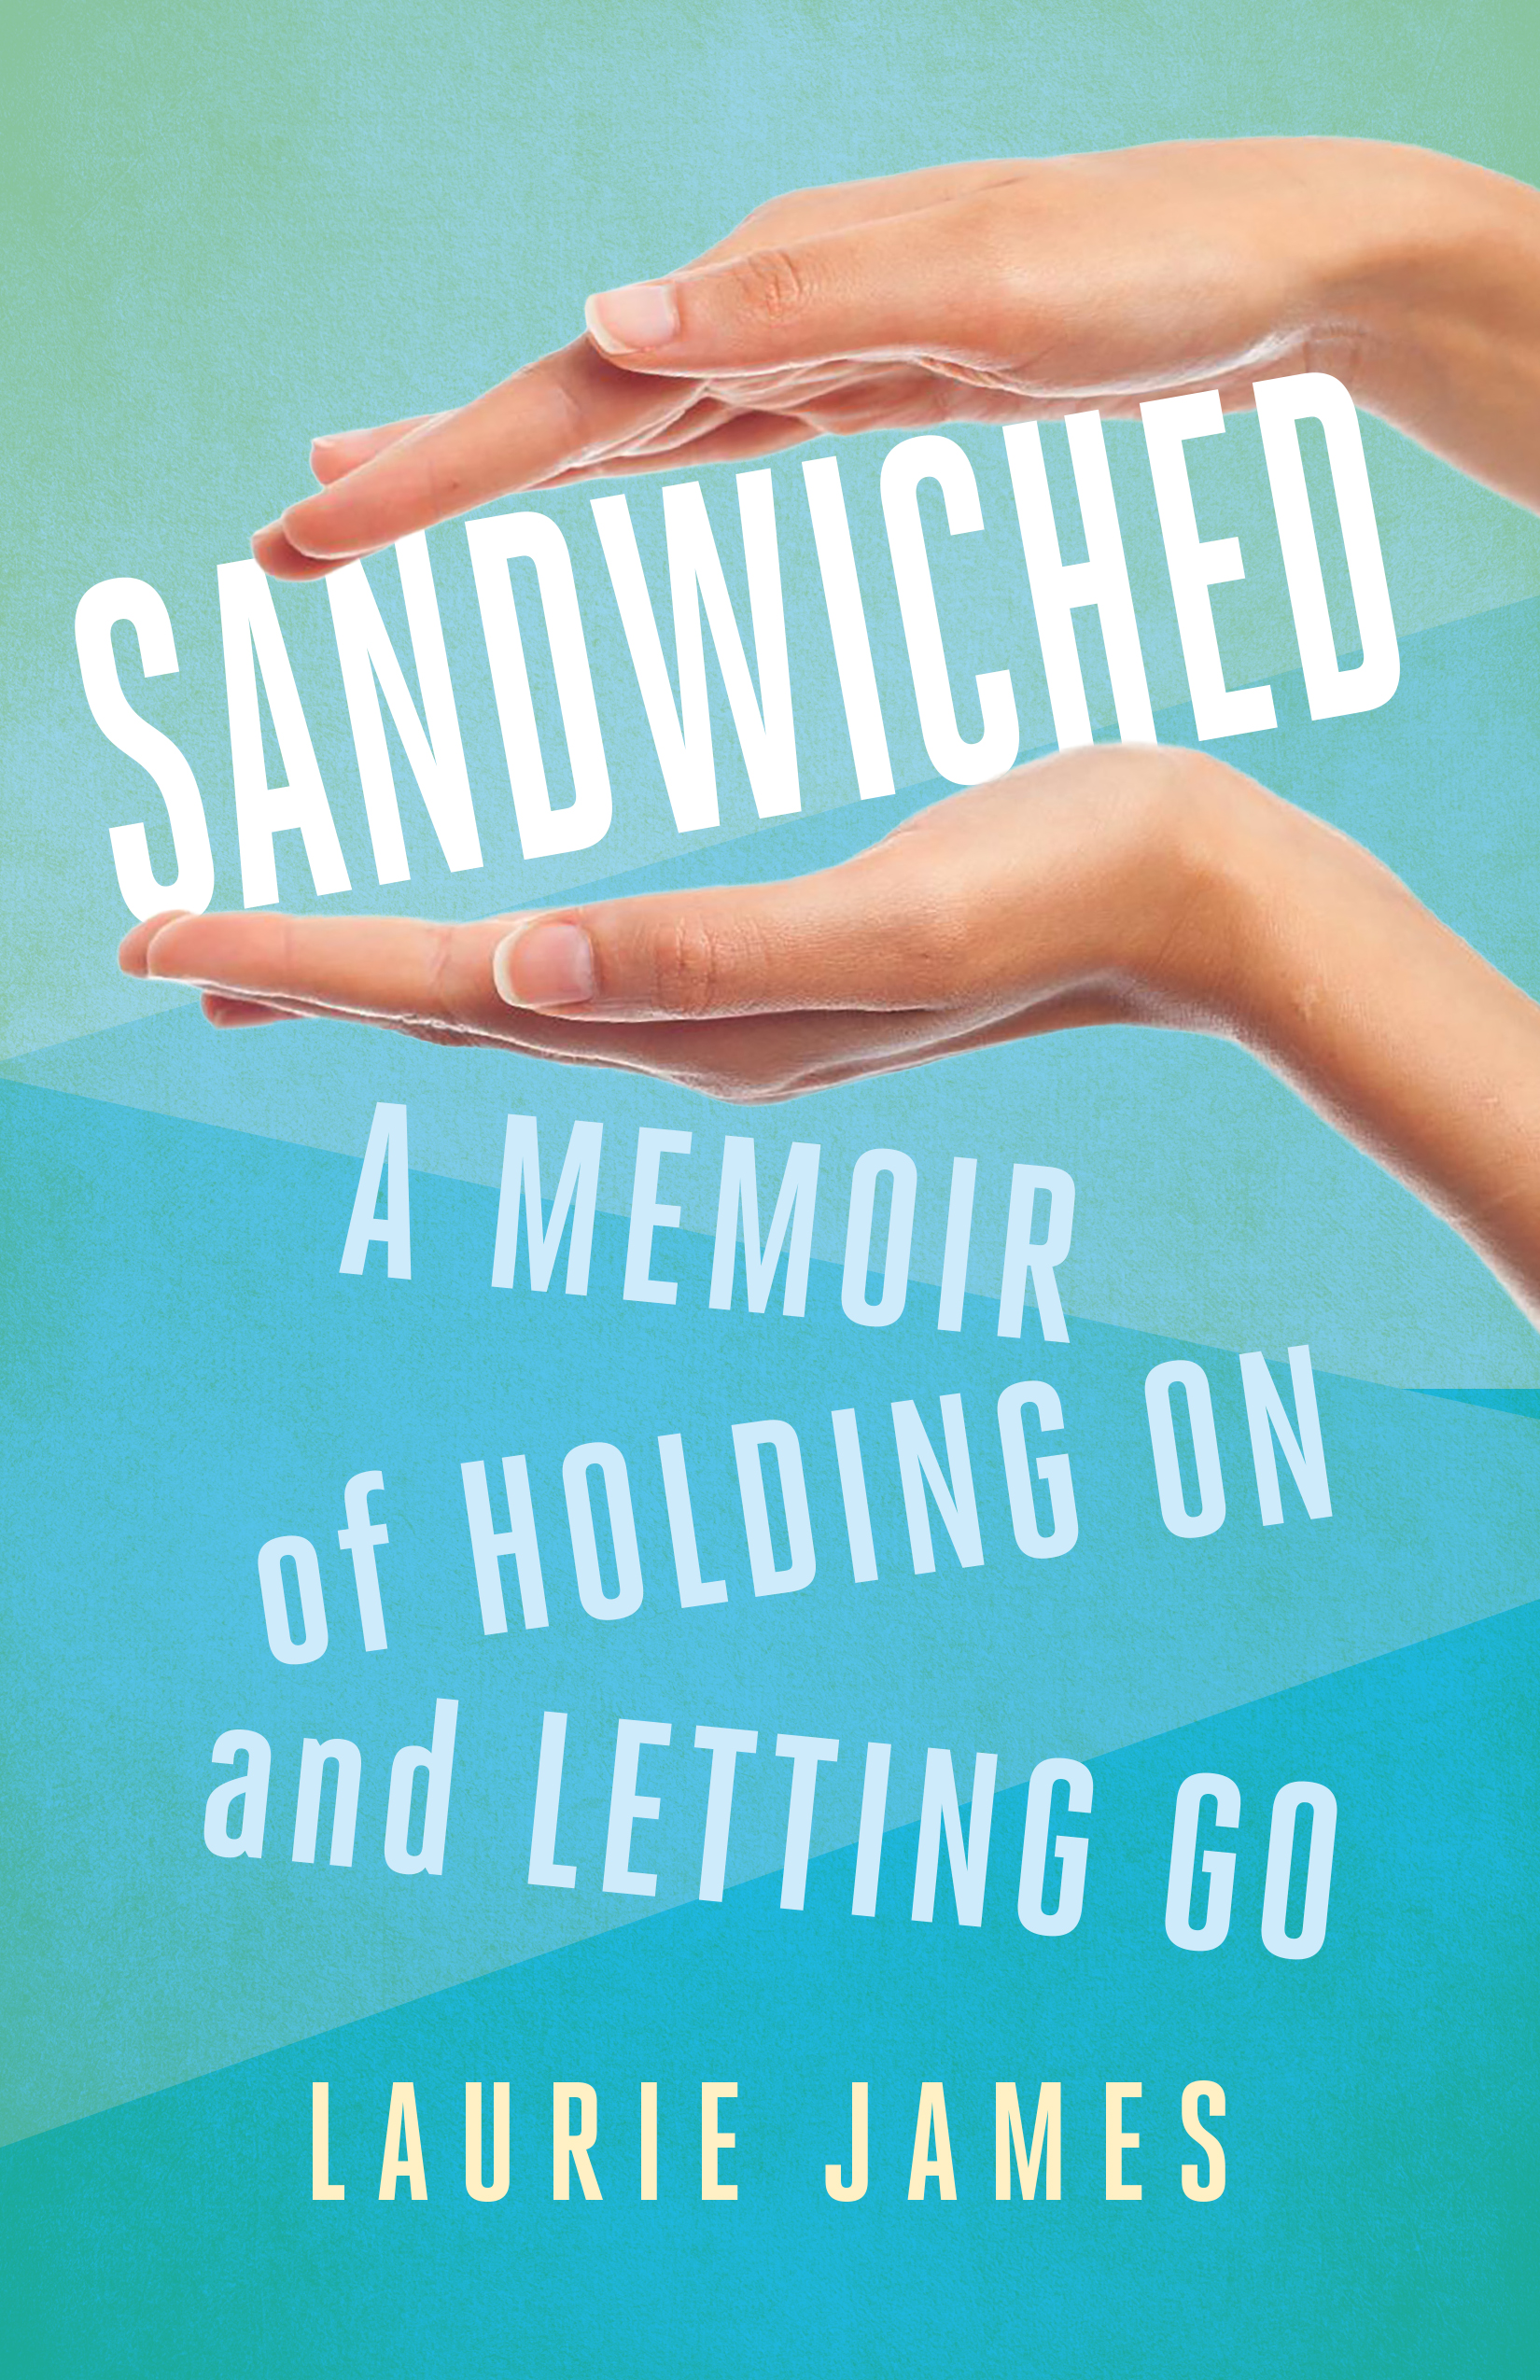 Sandwiched: A Memoir of Holding On and Letting Go